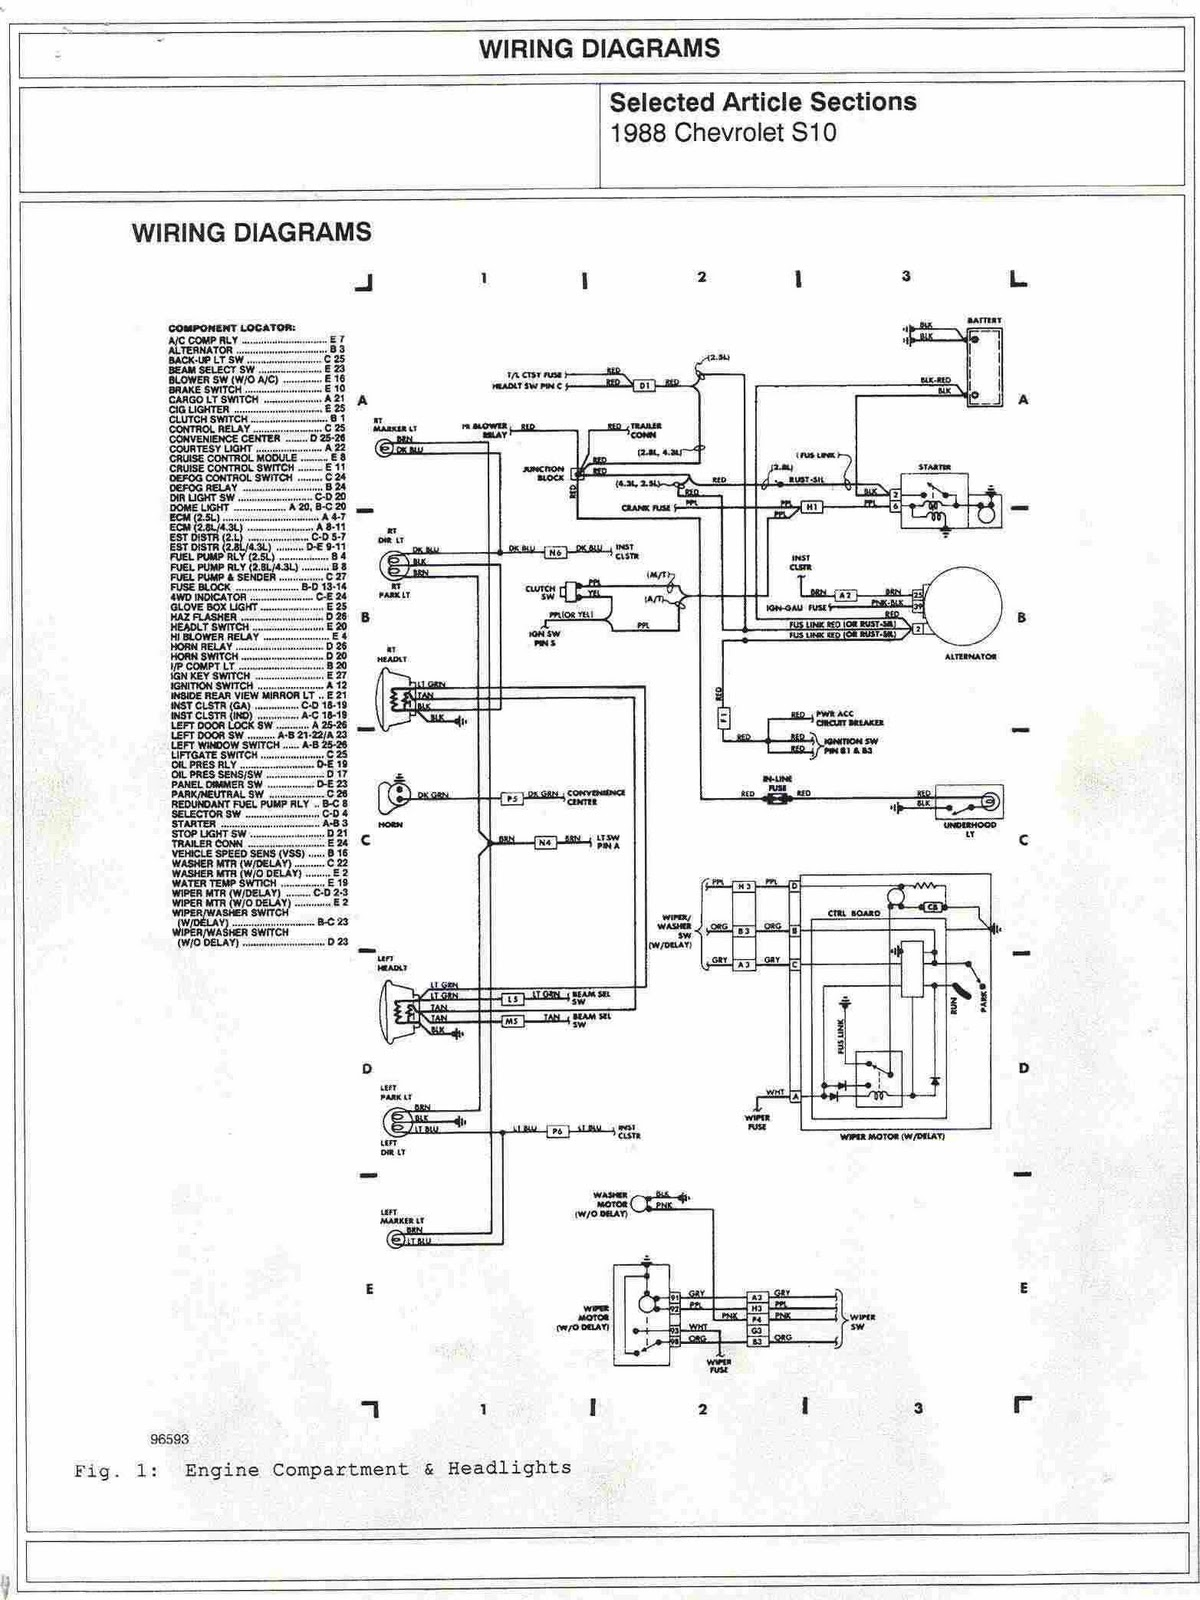 1988+Chevrolet+S10+Engine+Compartment+and+Headlights+Wiring+Diagrams 95 s10 wiring diagram 95 tahoe wiring diagram \u2022 wiring diagrams  at webbmarketing.co